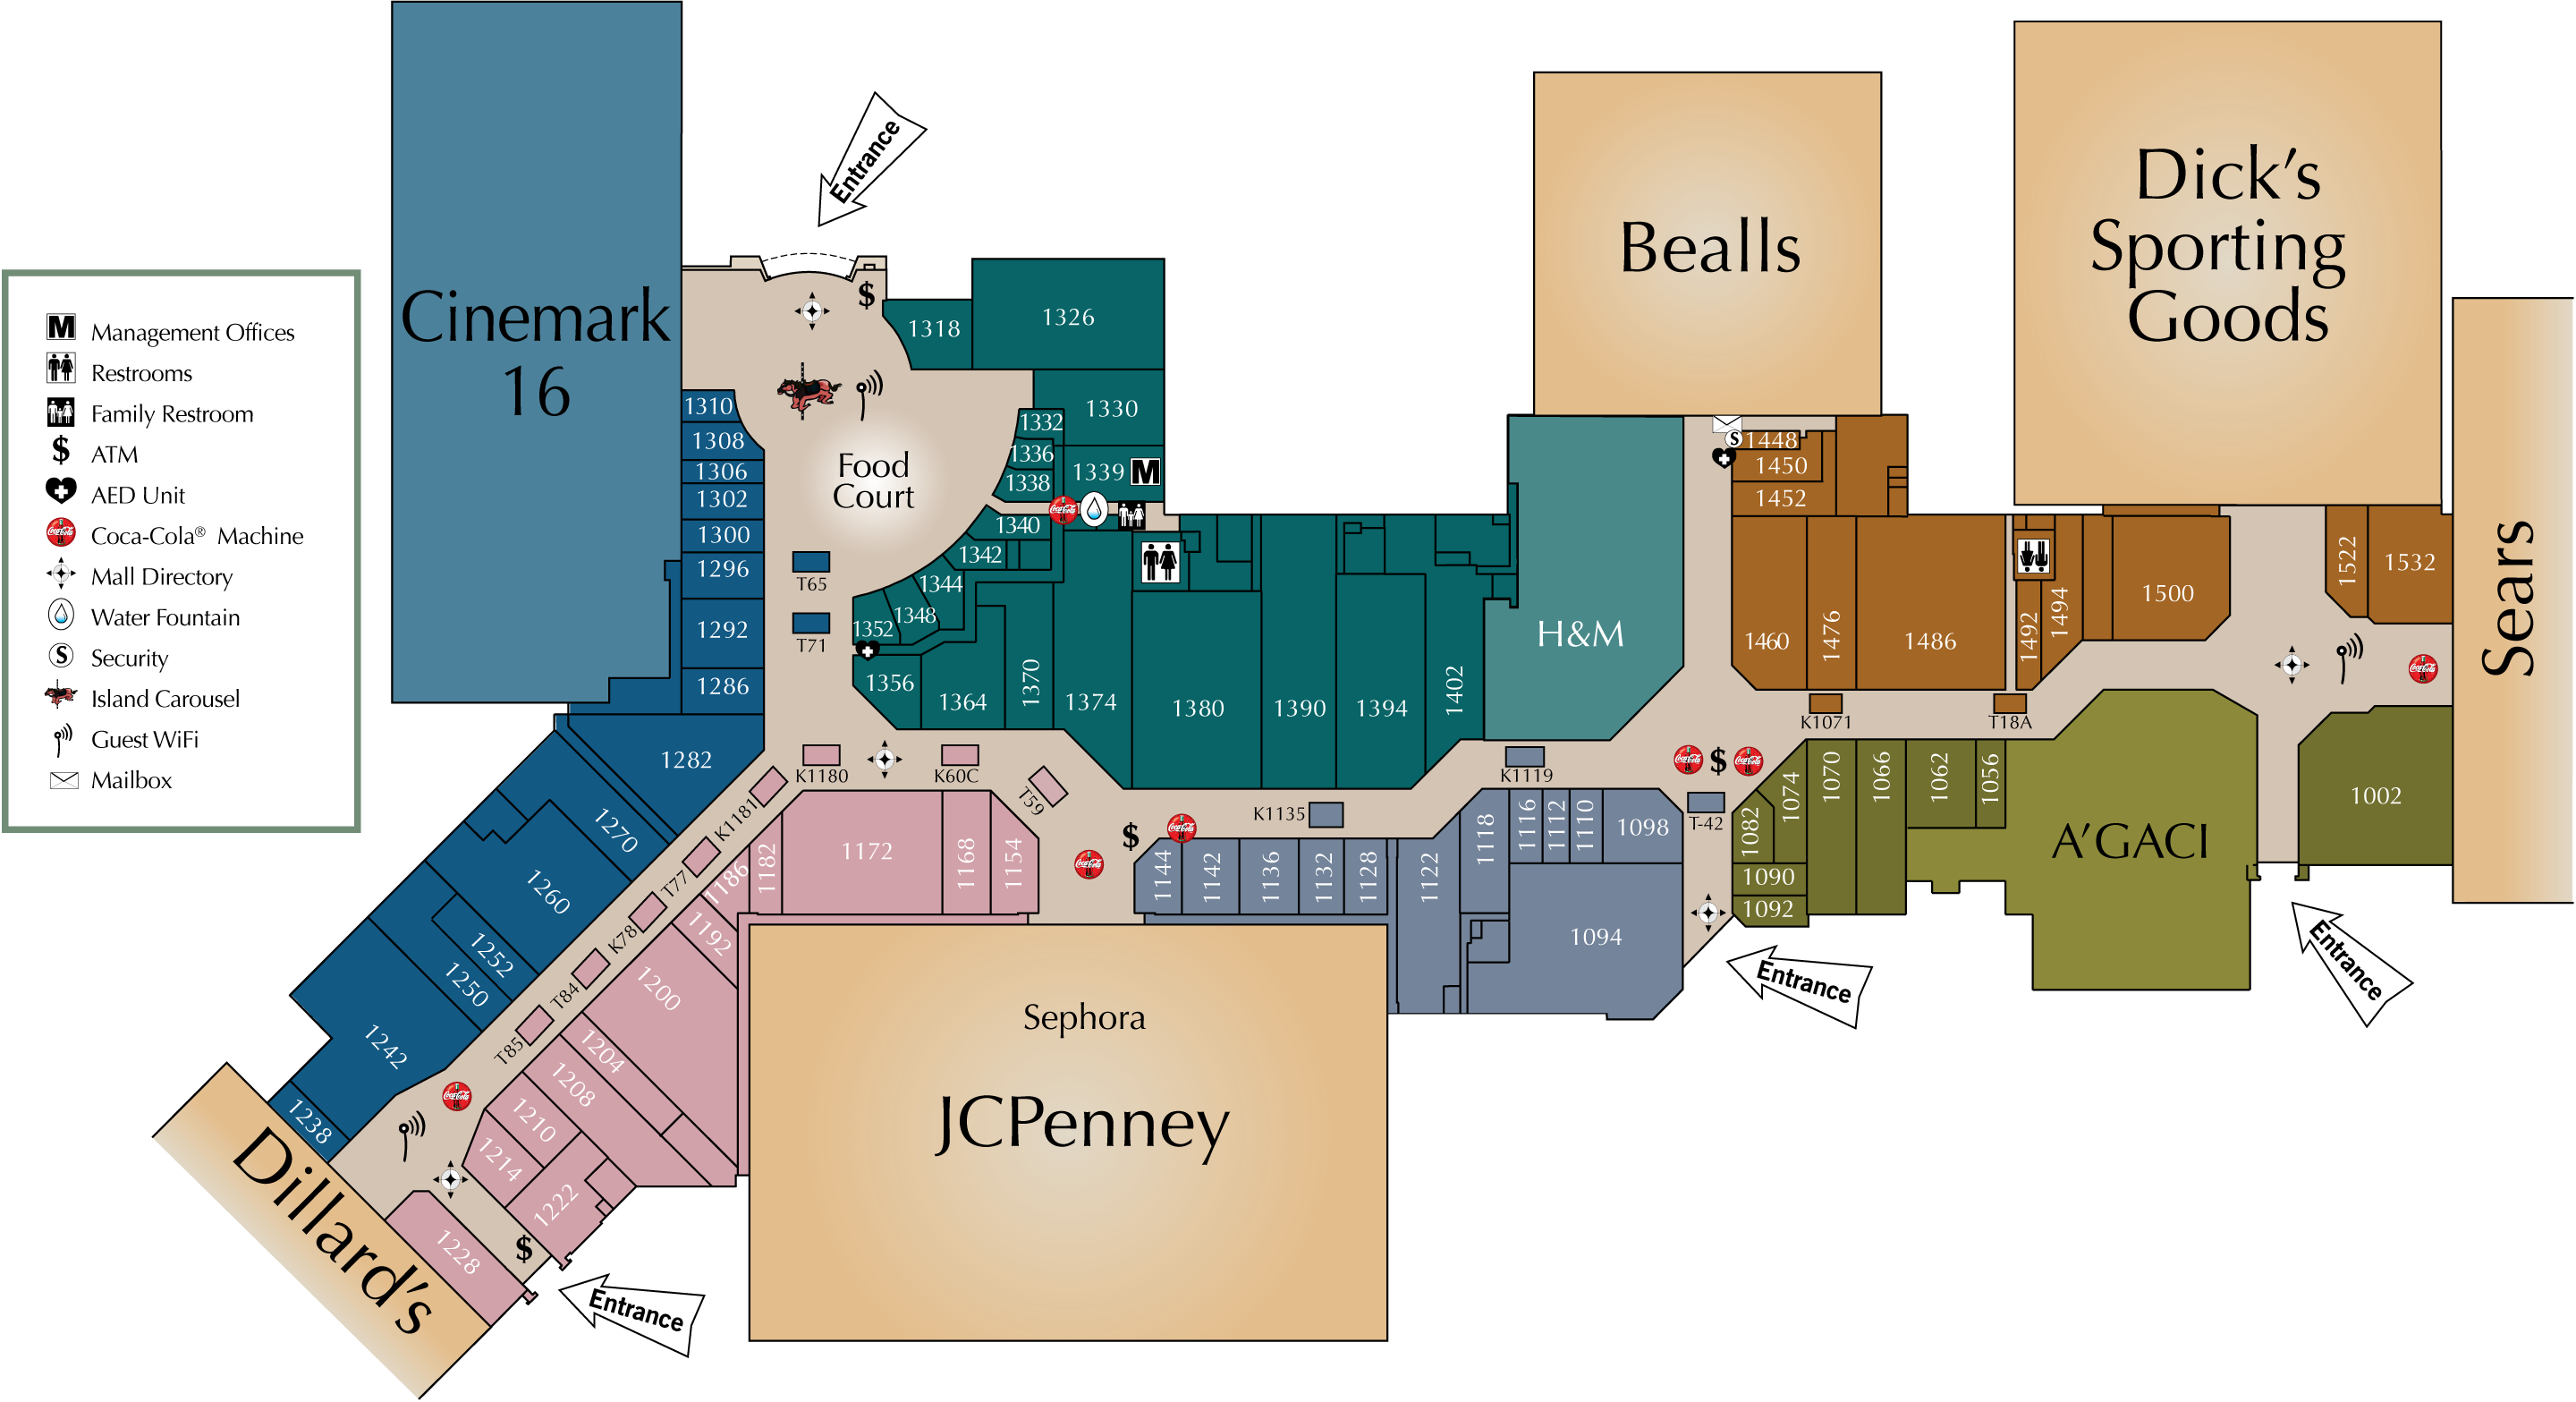 Mall Directory | Sunrise Mall on park place store map, smith haven mall stores map, tysons corner virginia map, dallas galleria store map, galleria mall dallas map, pier park store map, galleria mall gift cards, menlo park mall stores map, galleria mall directory, galleria mall store list, galleria mall dress stores, roseville galleria mall map, valley view center store map, houston galleria stores map, tysons mall map, downtown store map, arundel mills mall stores map, sawgrass mills store map,